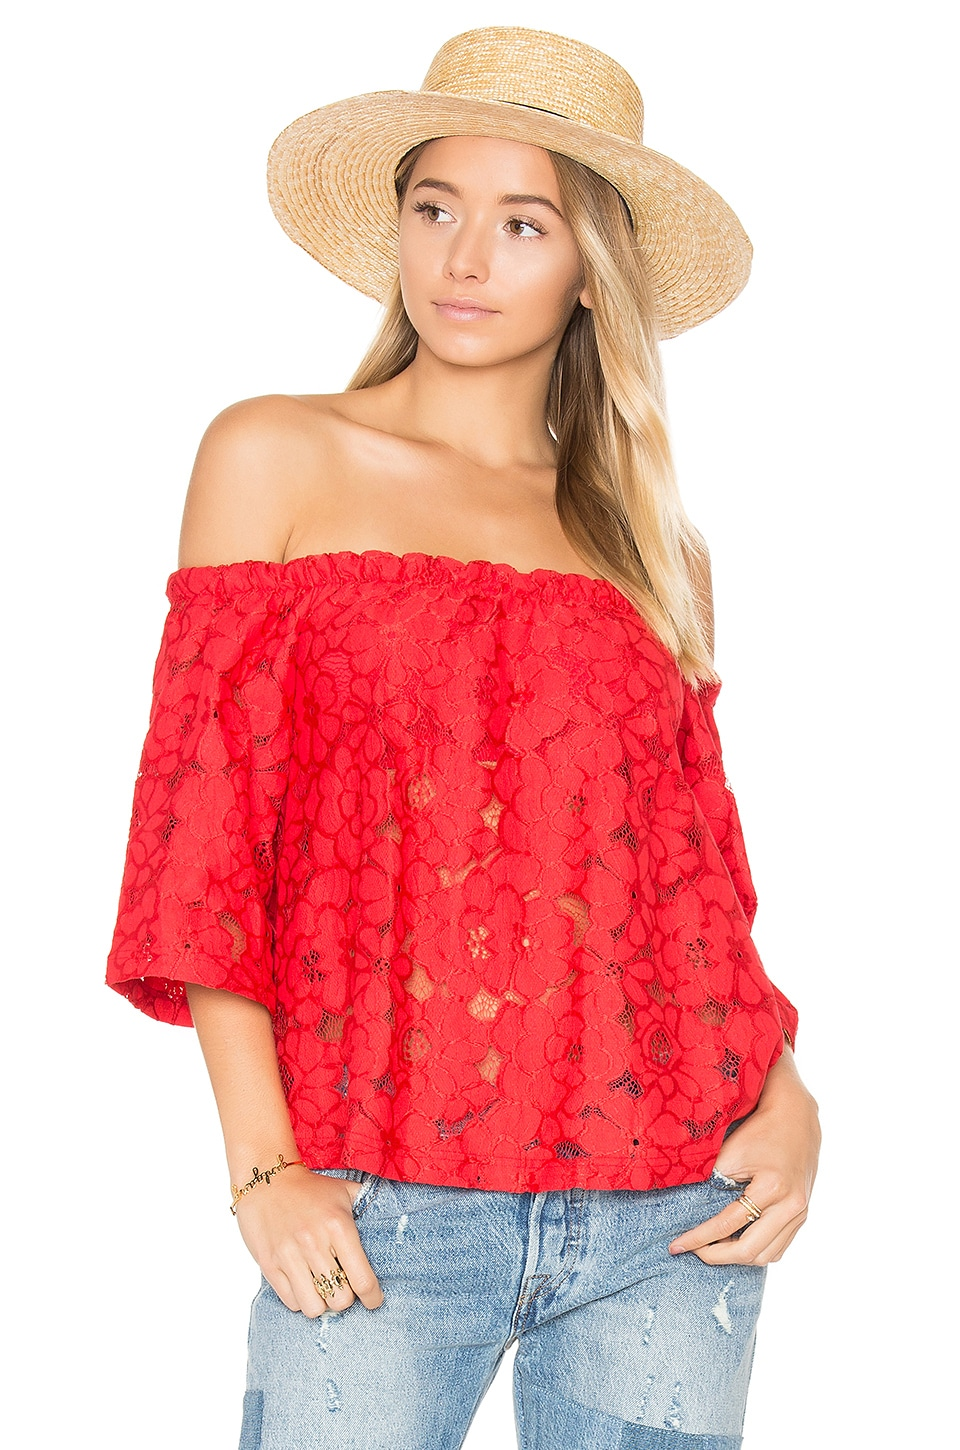 BB Dakota Jack by BB Dakota Oregano Top in Rococo Red